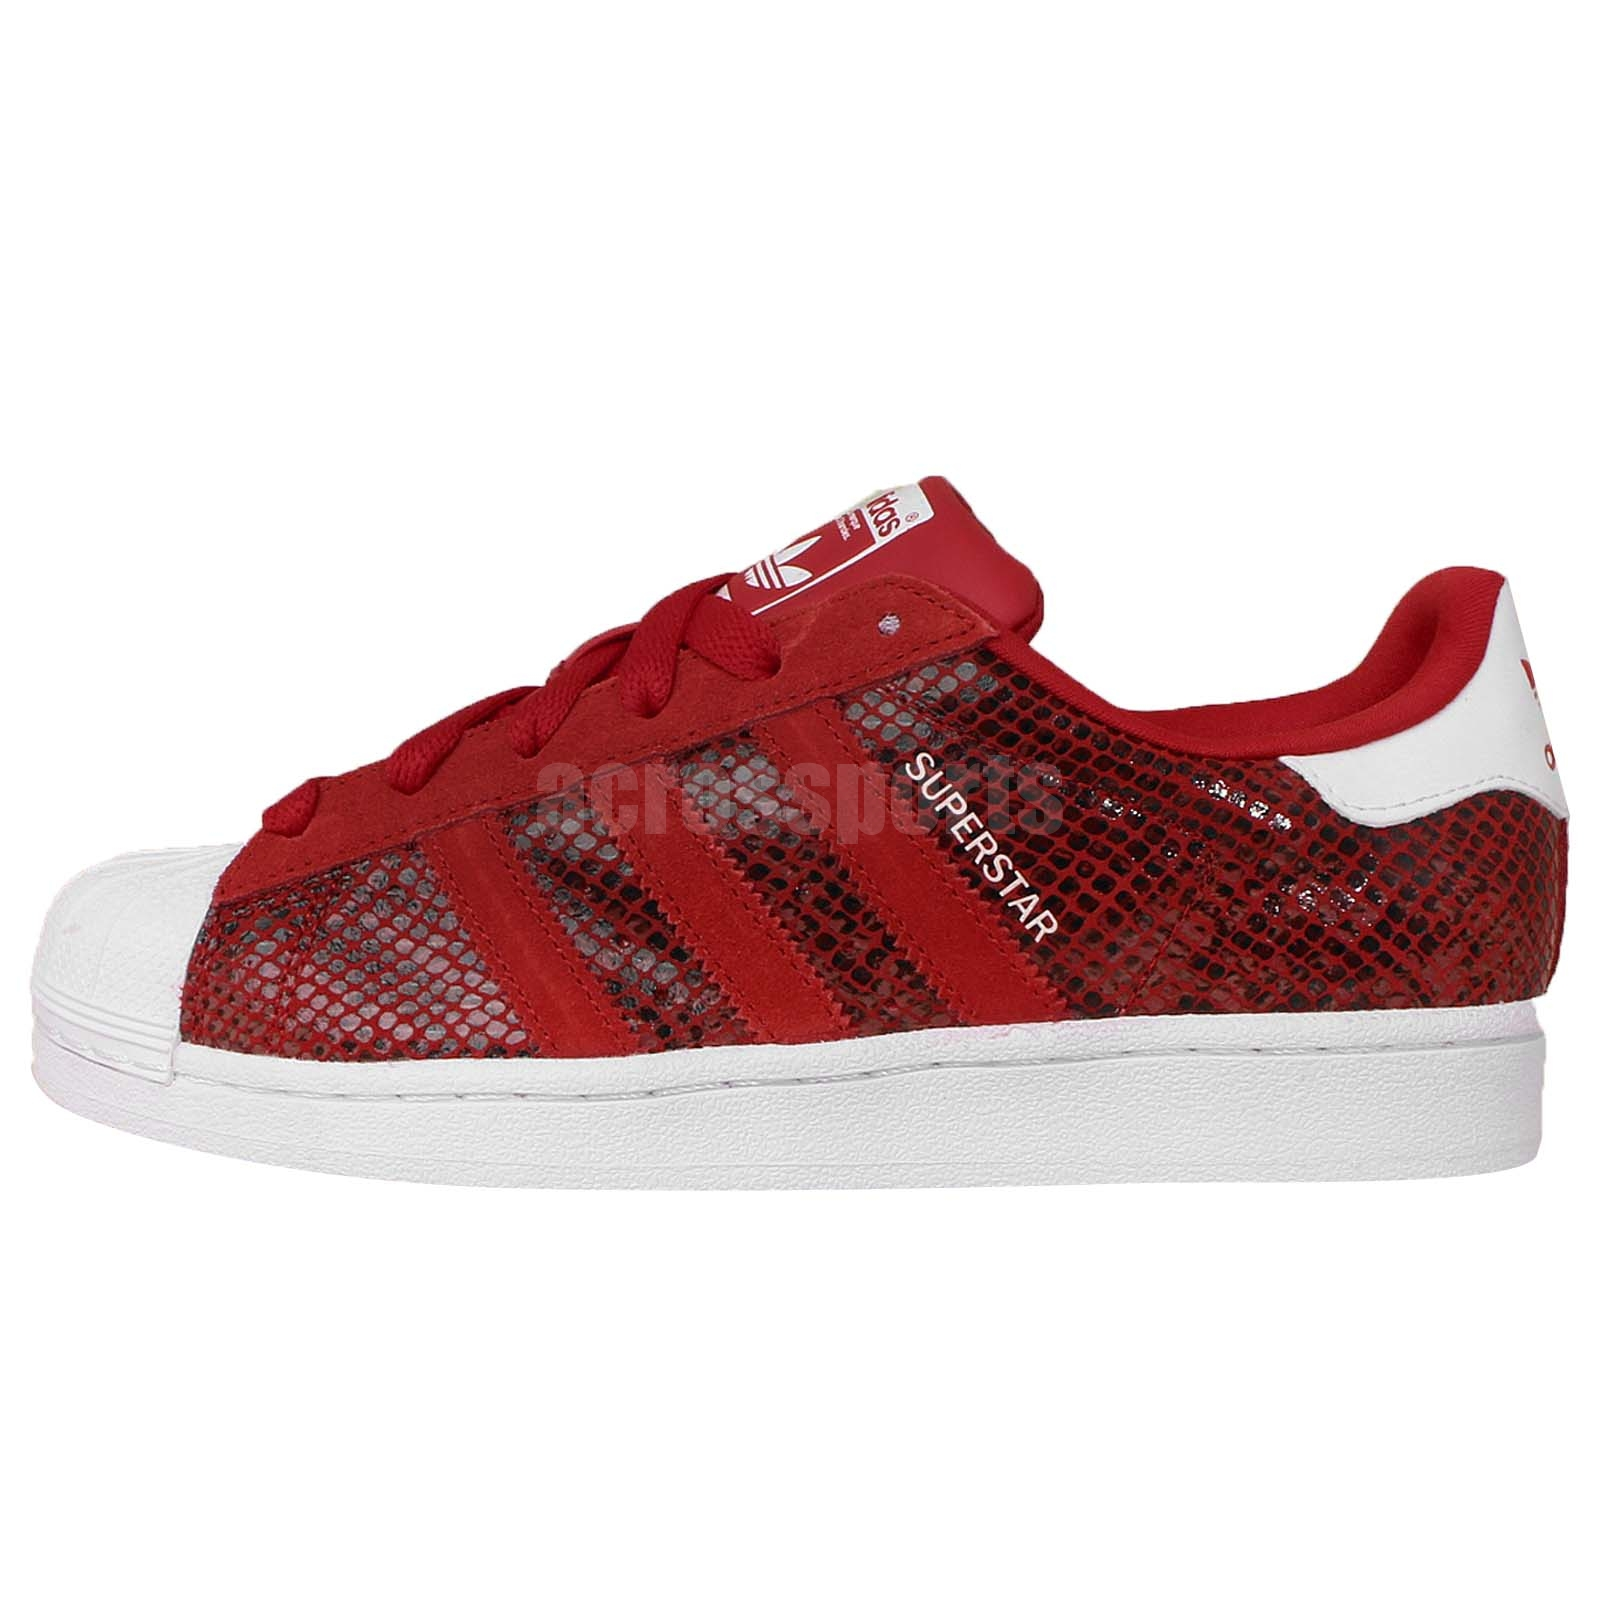 adidas superstar snake rouge,Adidas Originals Superstar Snake Rouge B25587 pas  cher Achat Vente Baskets enfant ... 637b0d87751e